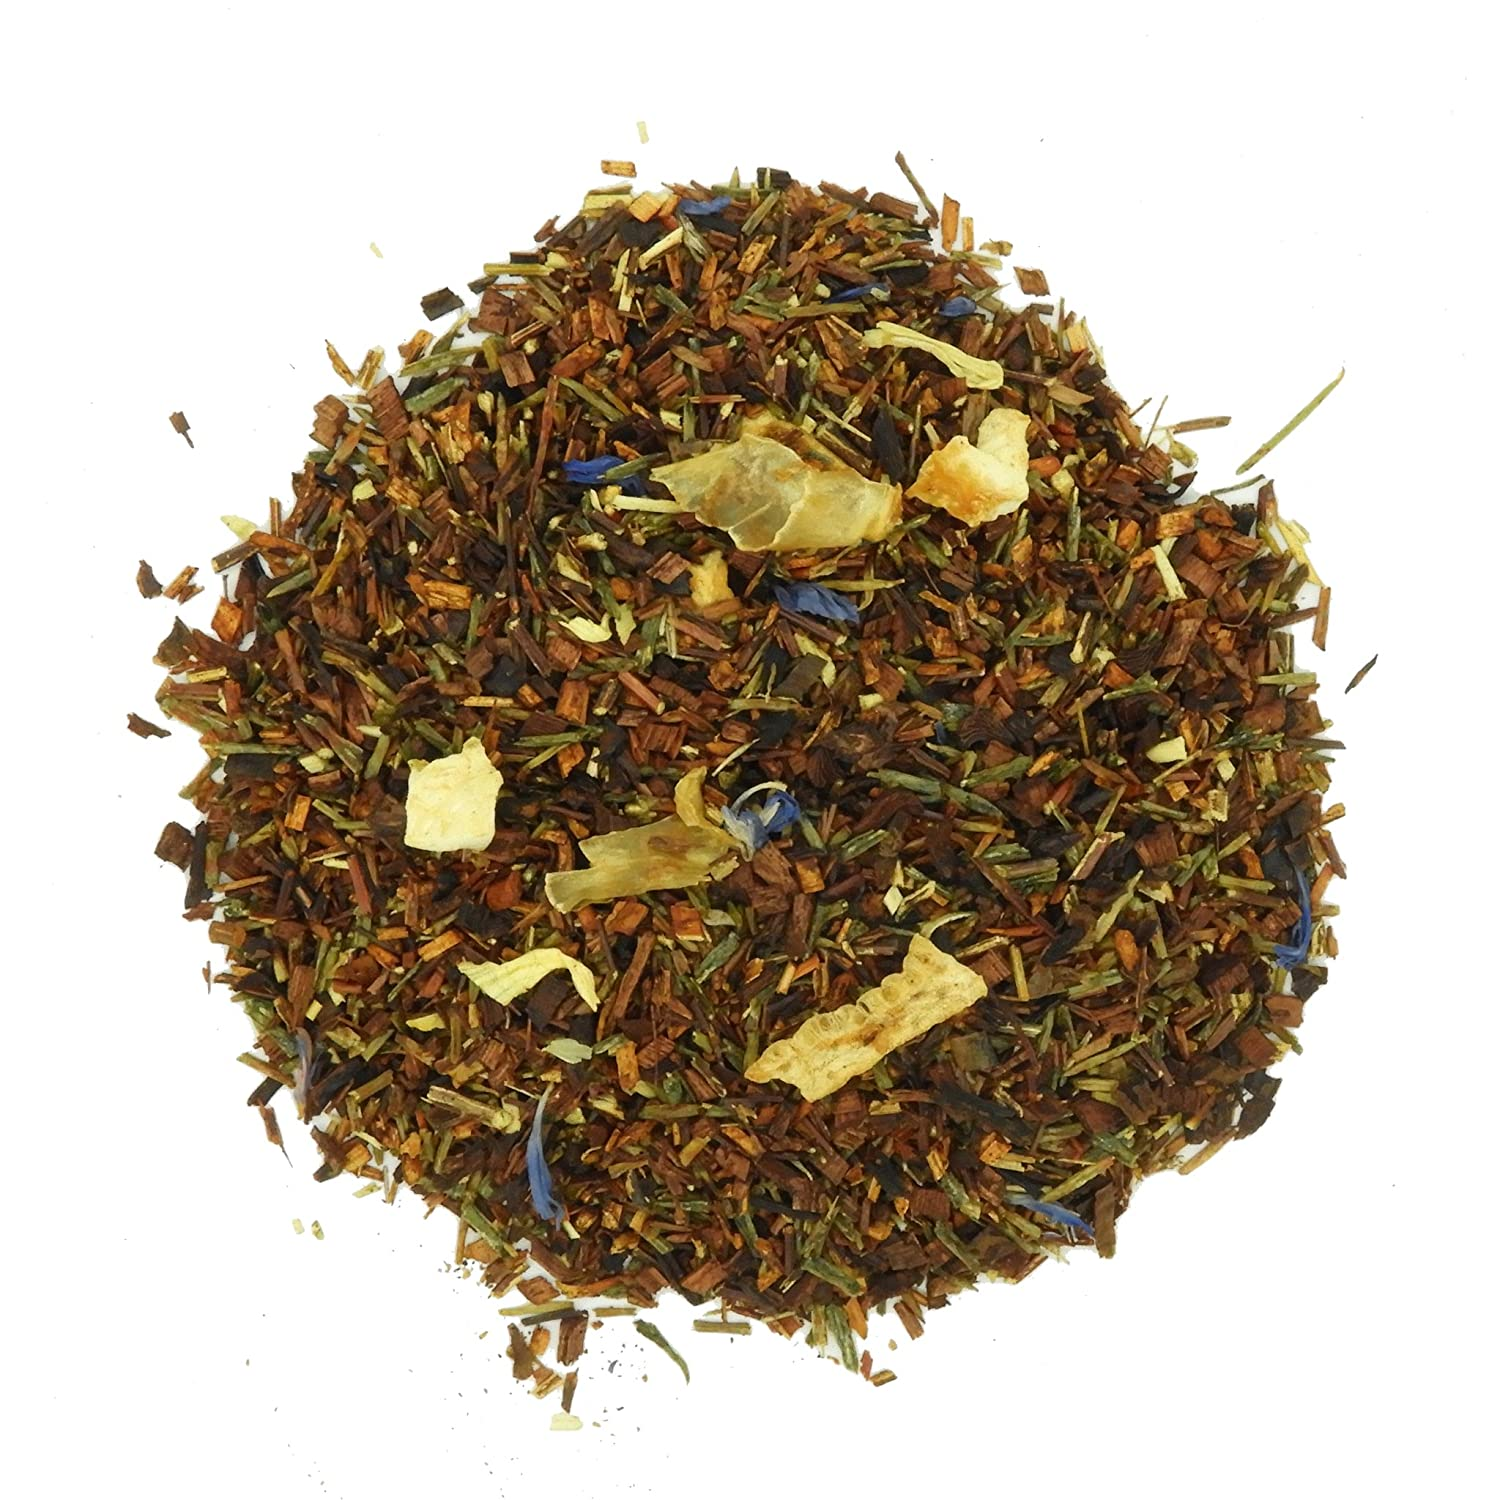 Whistling Kettle Tea - Loose Leaf Tea - 4 Ounces (Lemon Souffle) - Rooibos